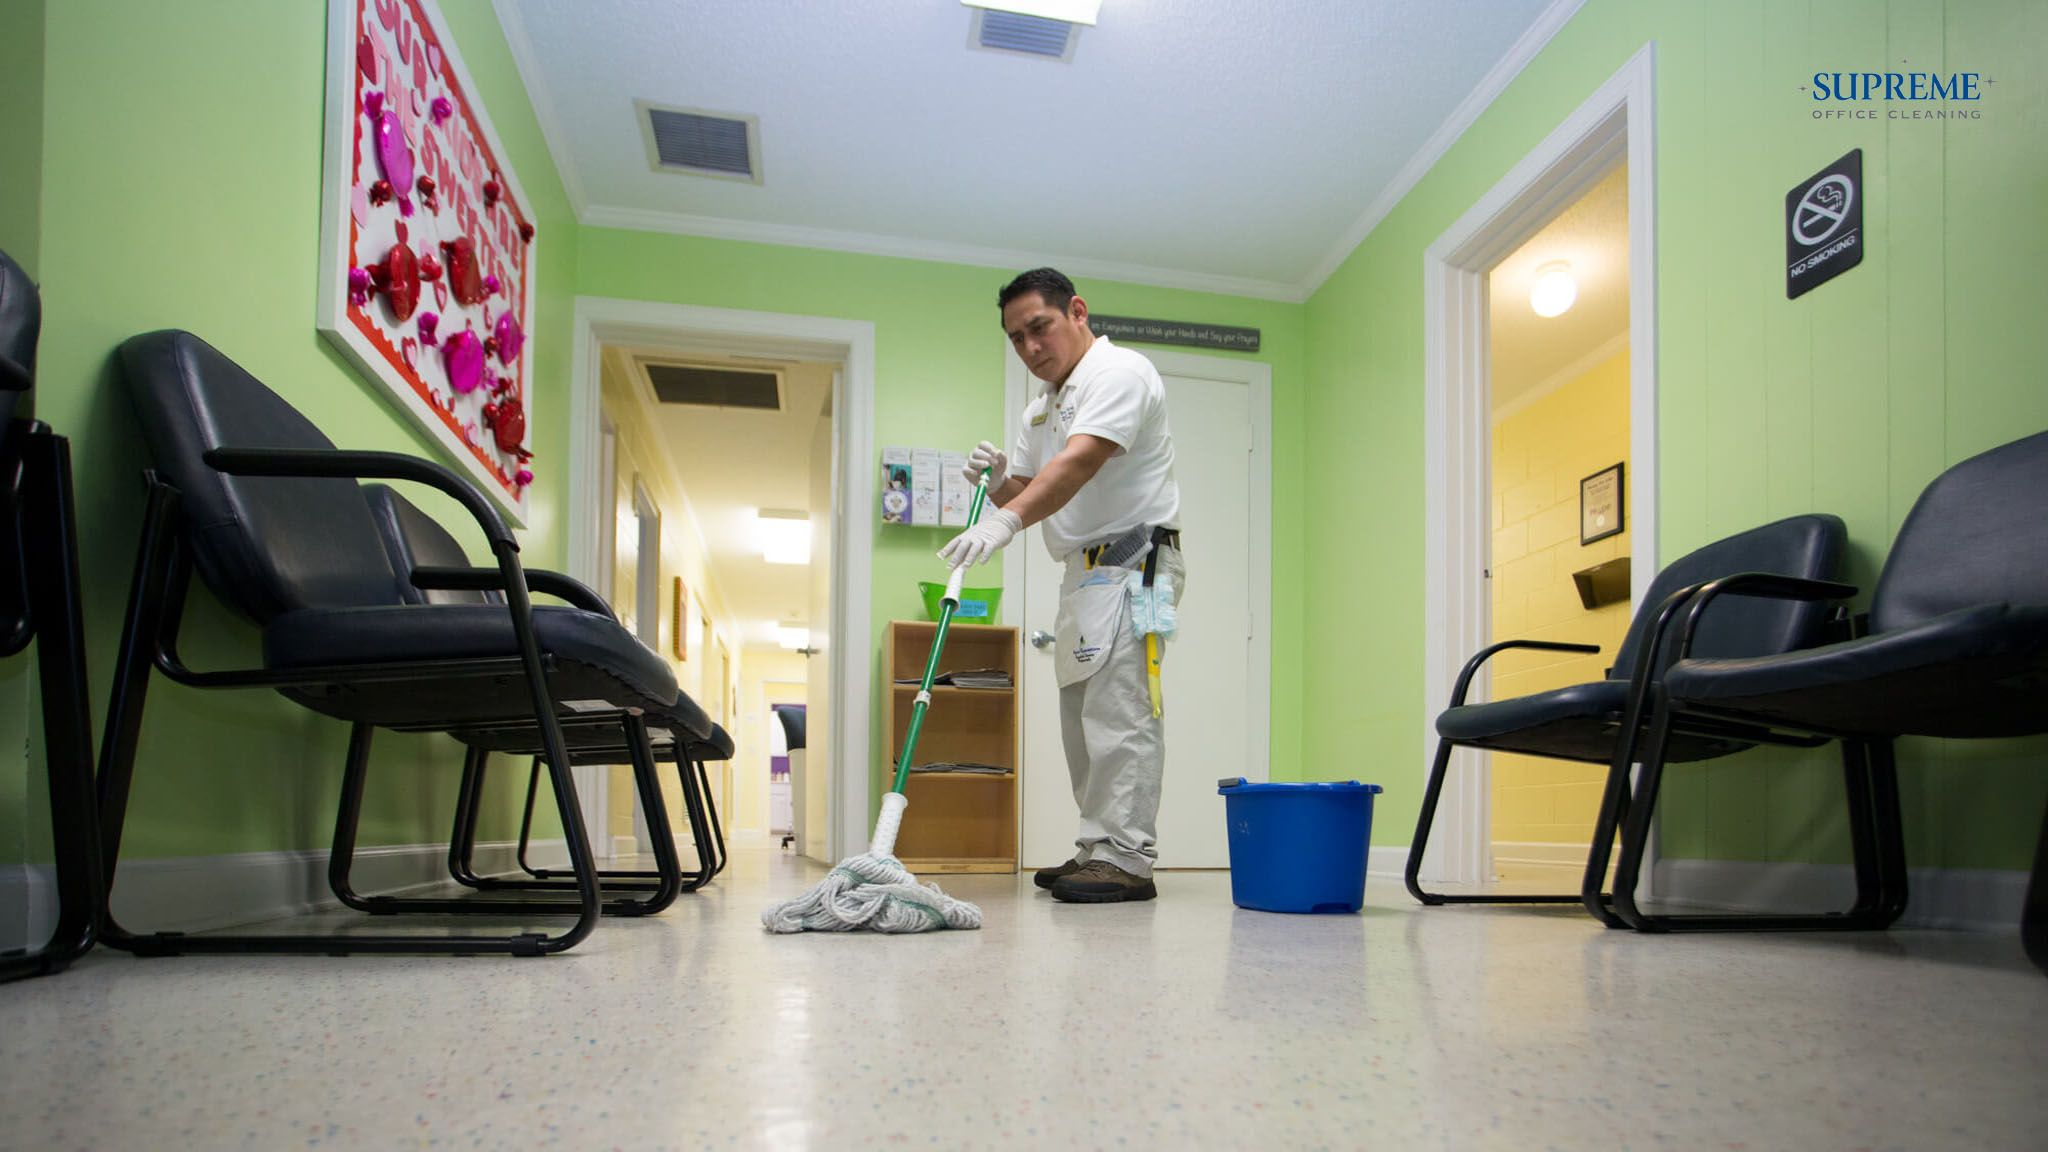 Supreme Office Cleaning Clean Office Business Cleaning Services